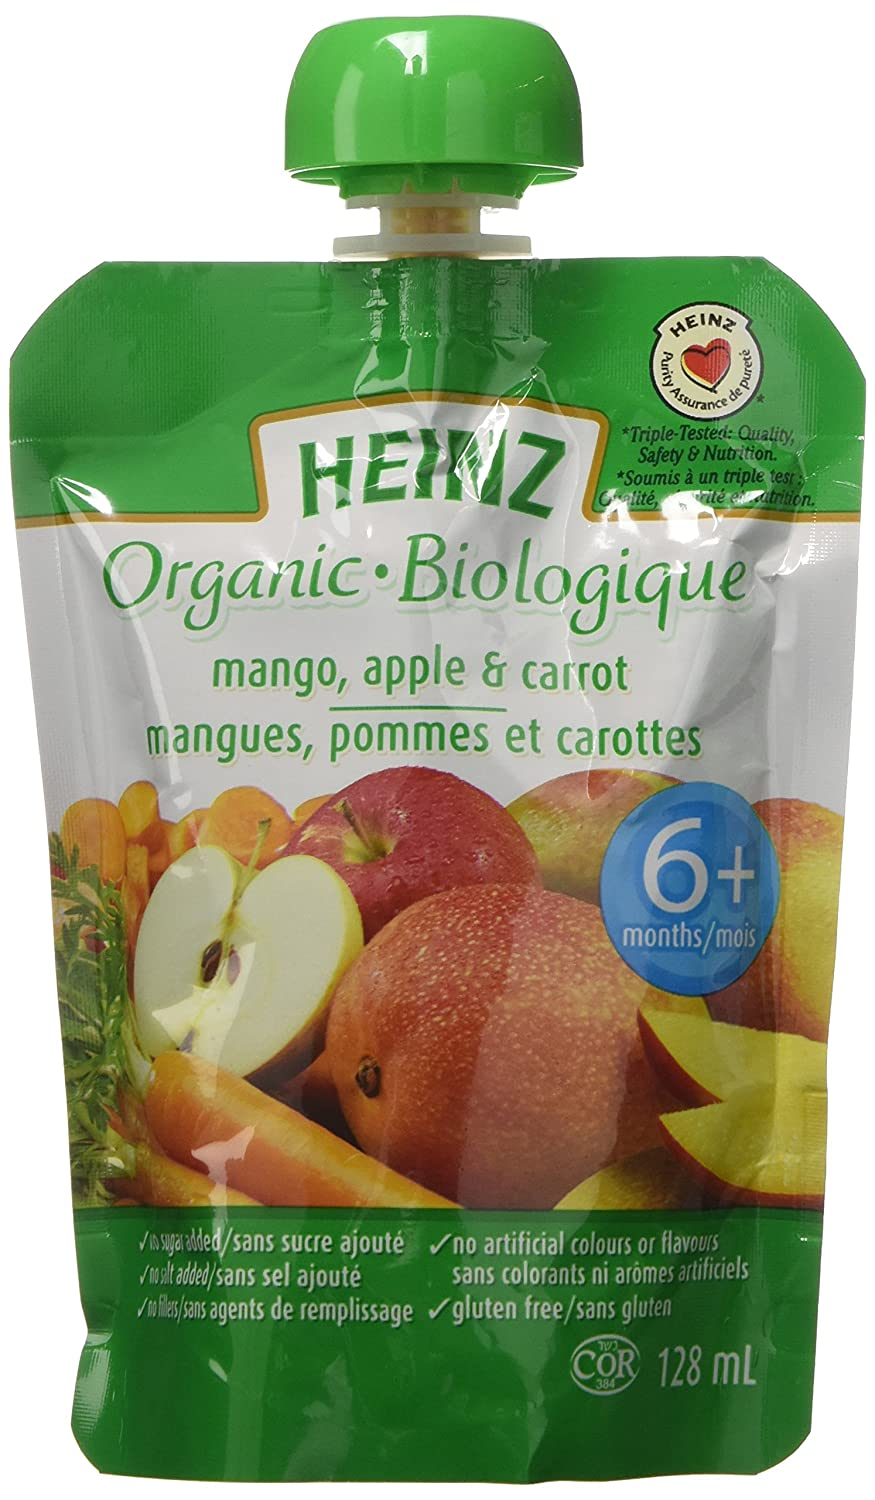 HEINZ Strained Organic Peach Banana Apricot Pouch, 6 Pack, 128ML Each Kraft Heinz Canada ULC